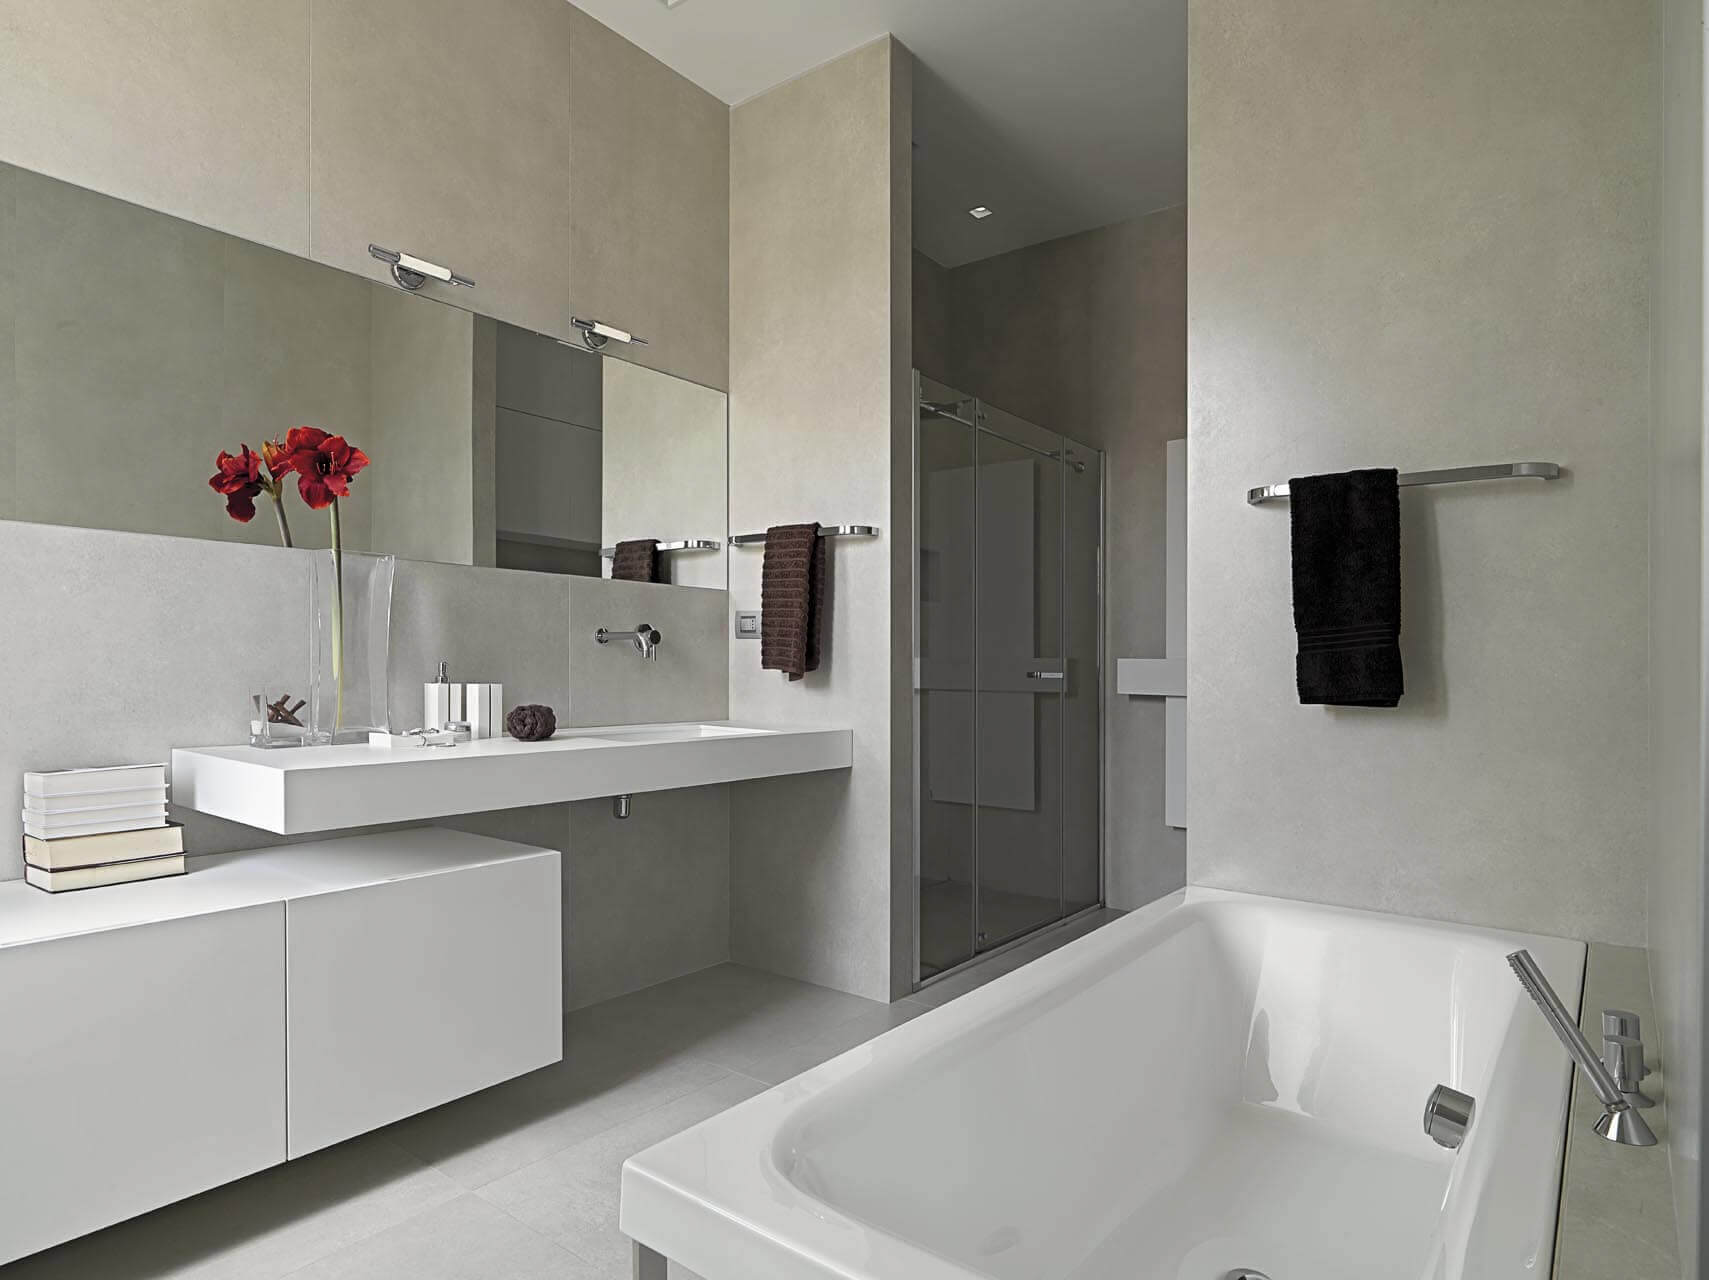 Contemporary family bathroom with white sanitary ware, floating shelves, grey walls and horizontal mirror.